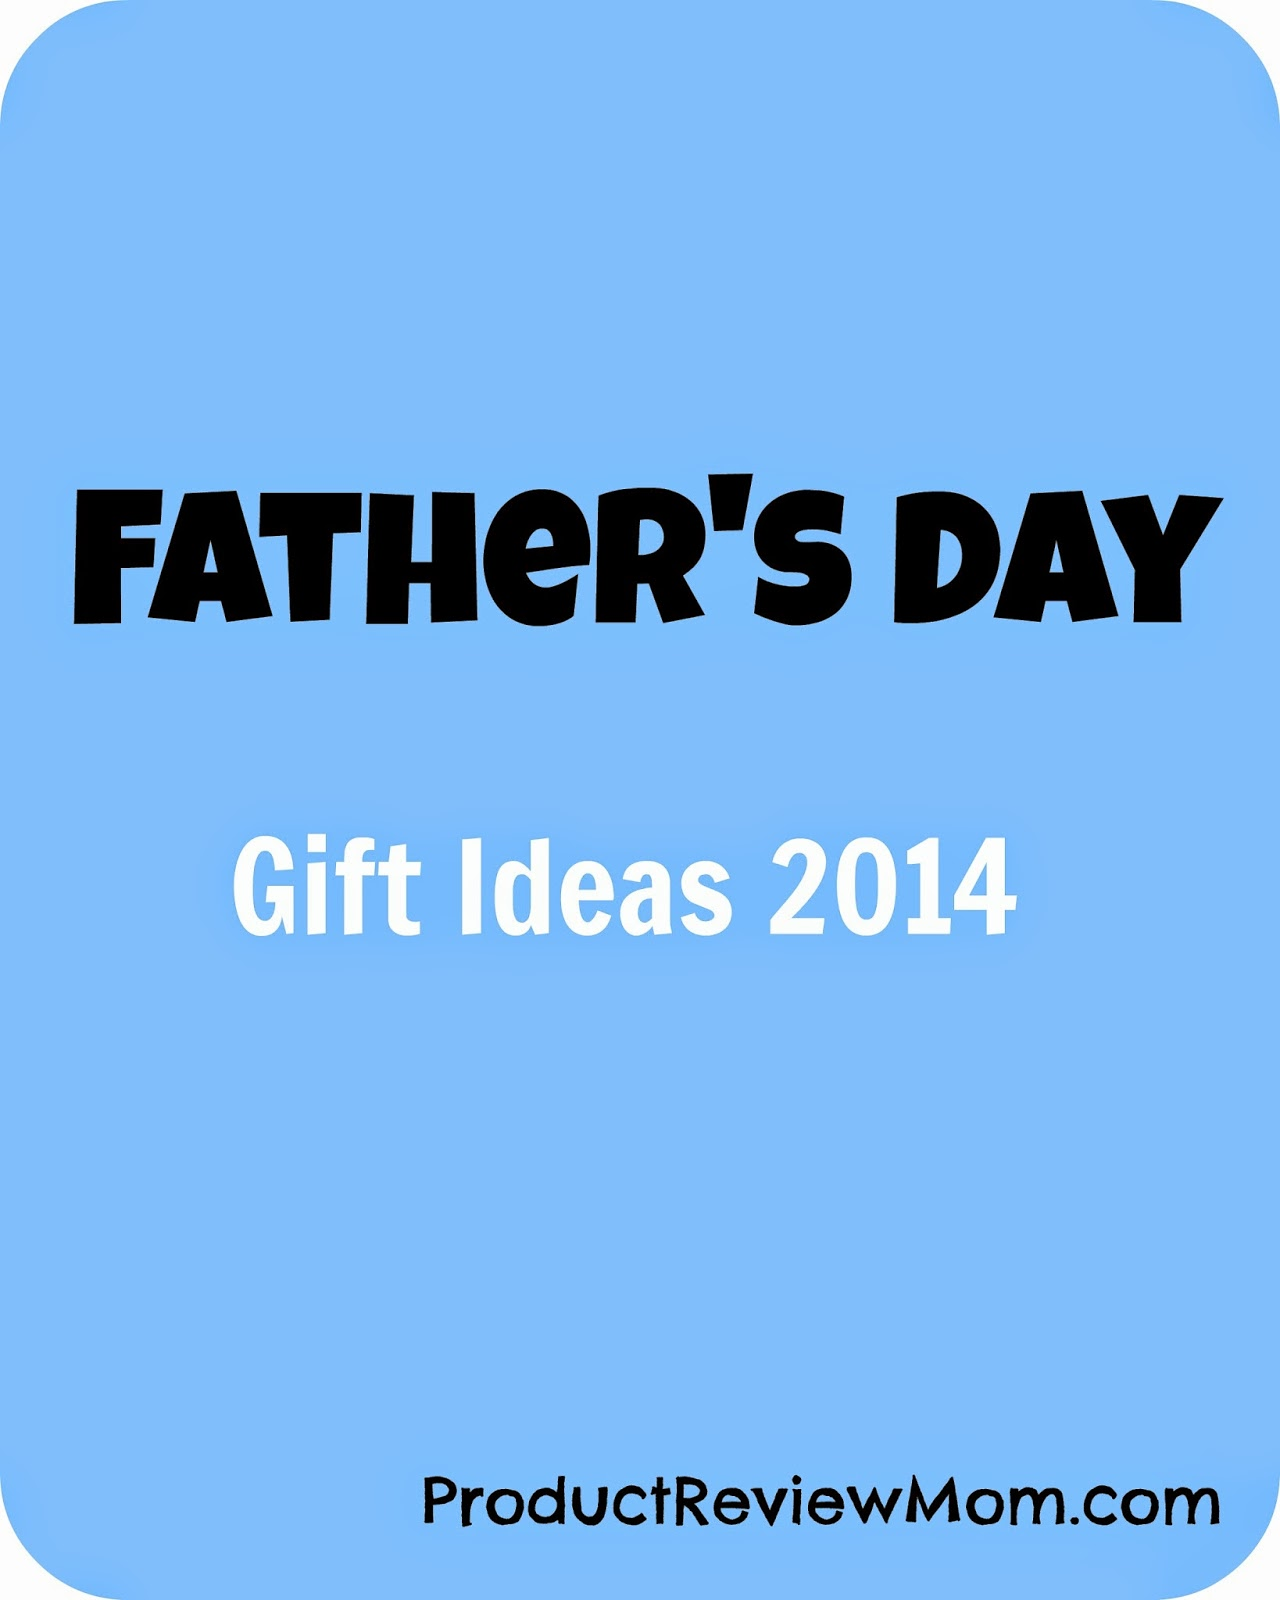 Father's Day Gift Ideas 2014   via  www.productreviewmom.com